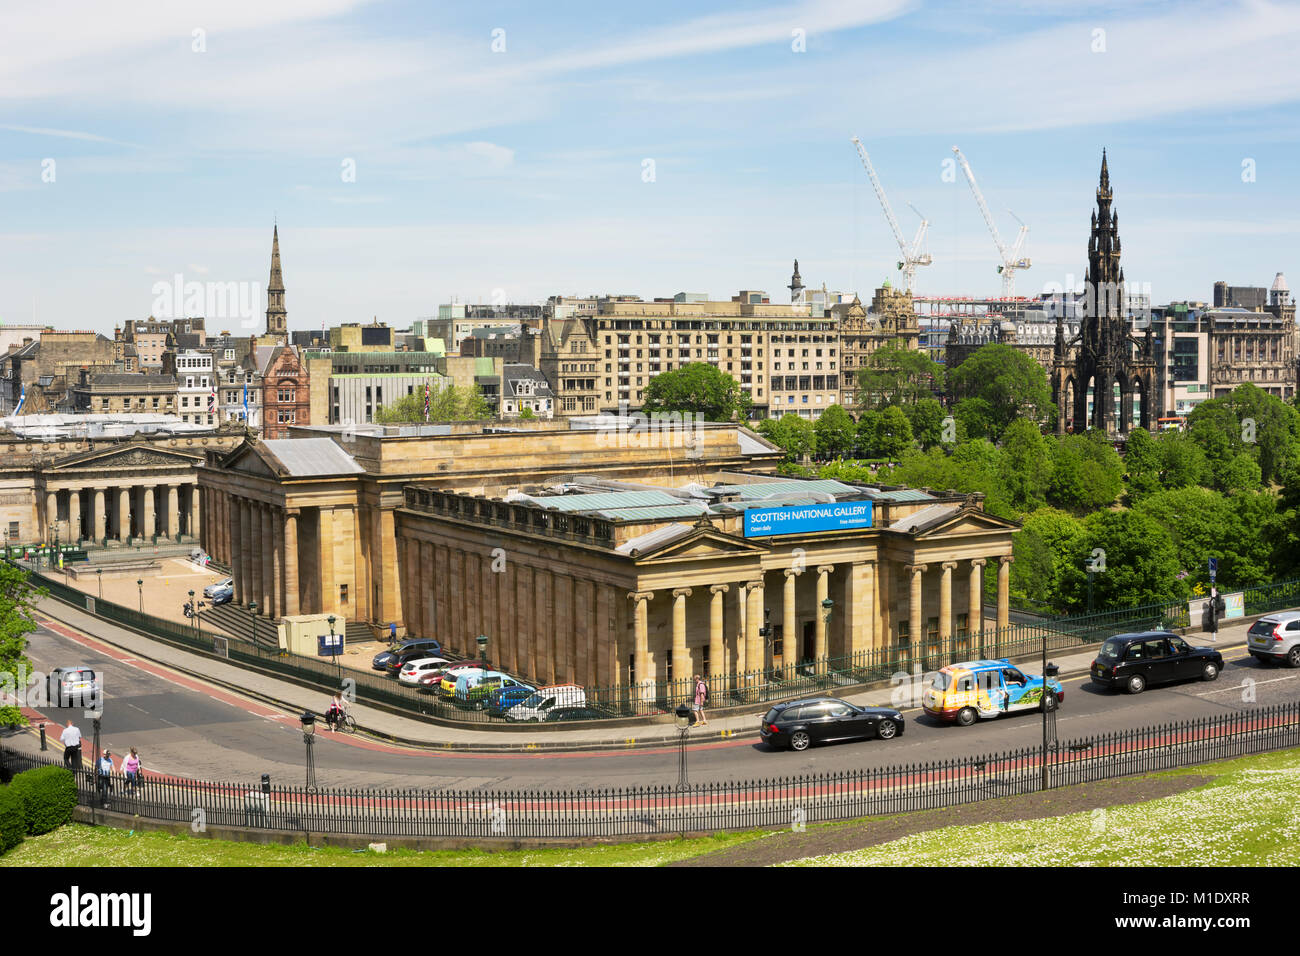 EDINBURGH, SCOTLAND - JUNE 12, 2015:  View towards Scottish National Gallery and Scott Monument from a high point Stock Photo